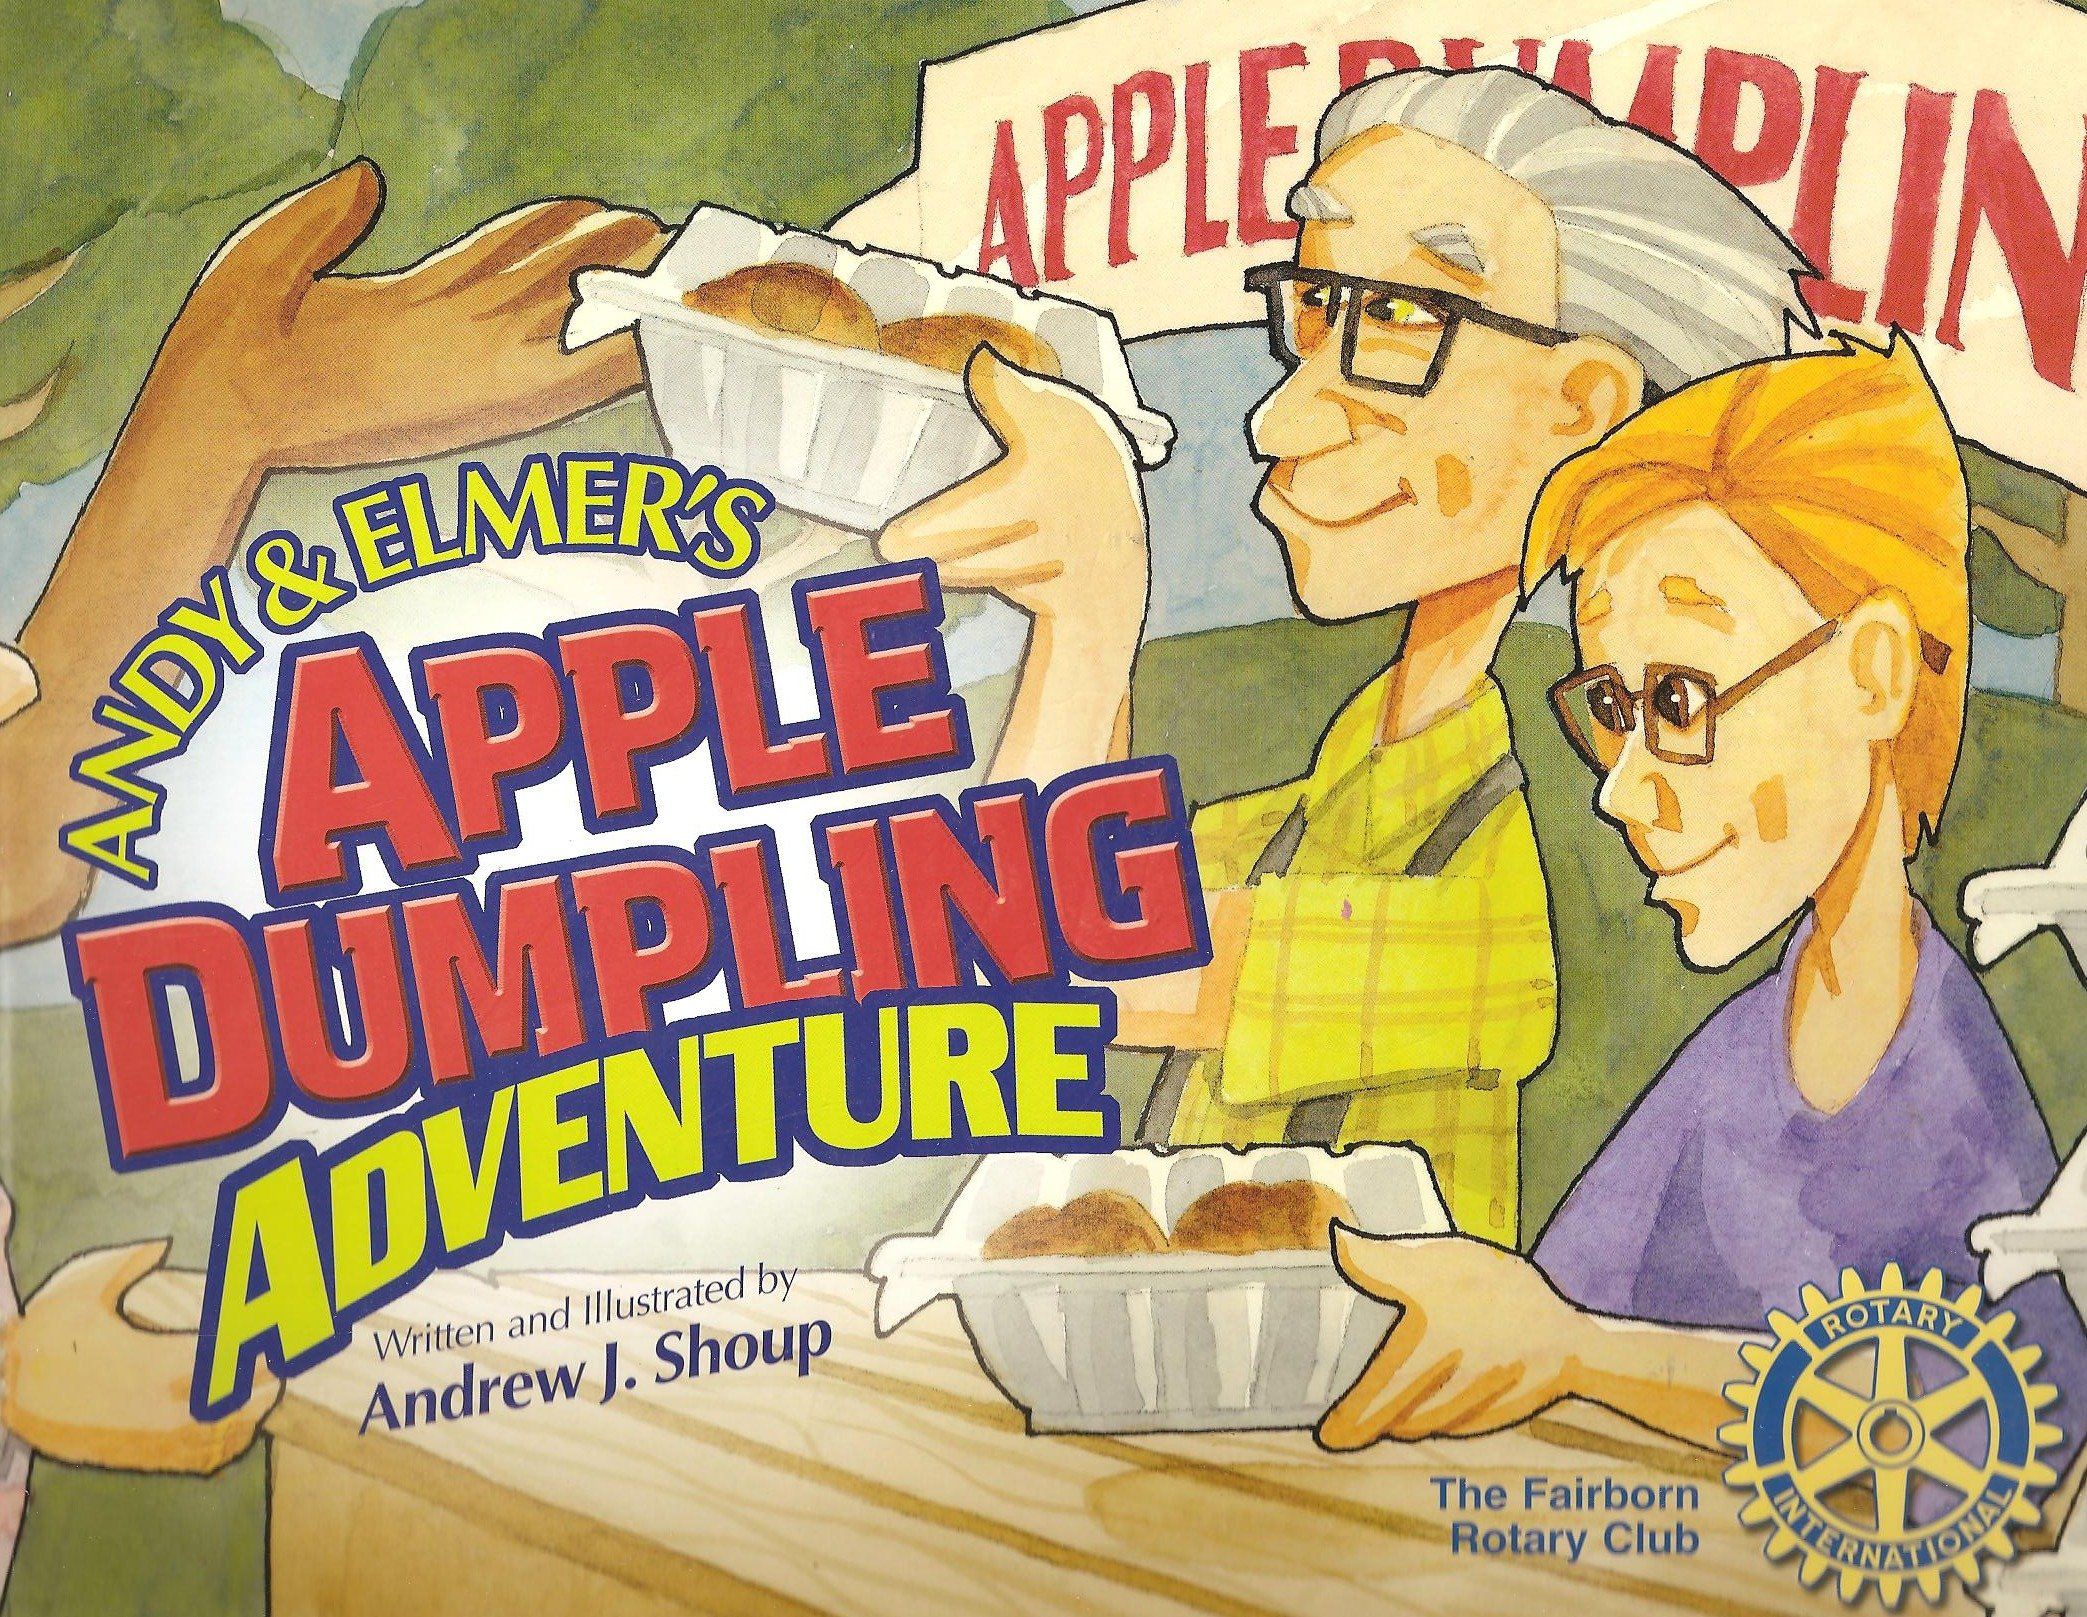 WANT TO TRY THIS APPLE DUMPLING RECIPE?